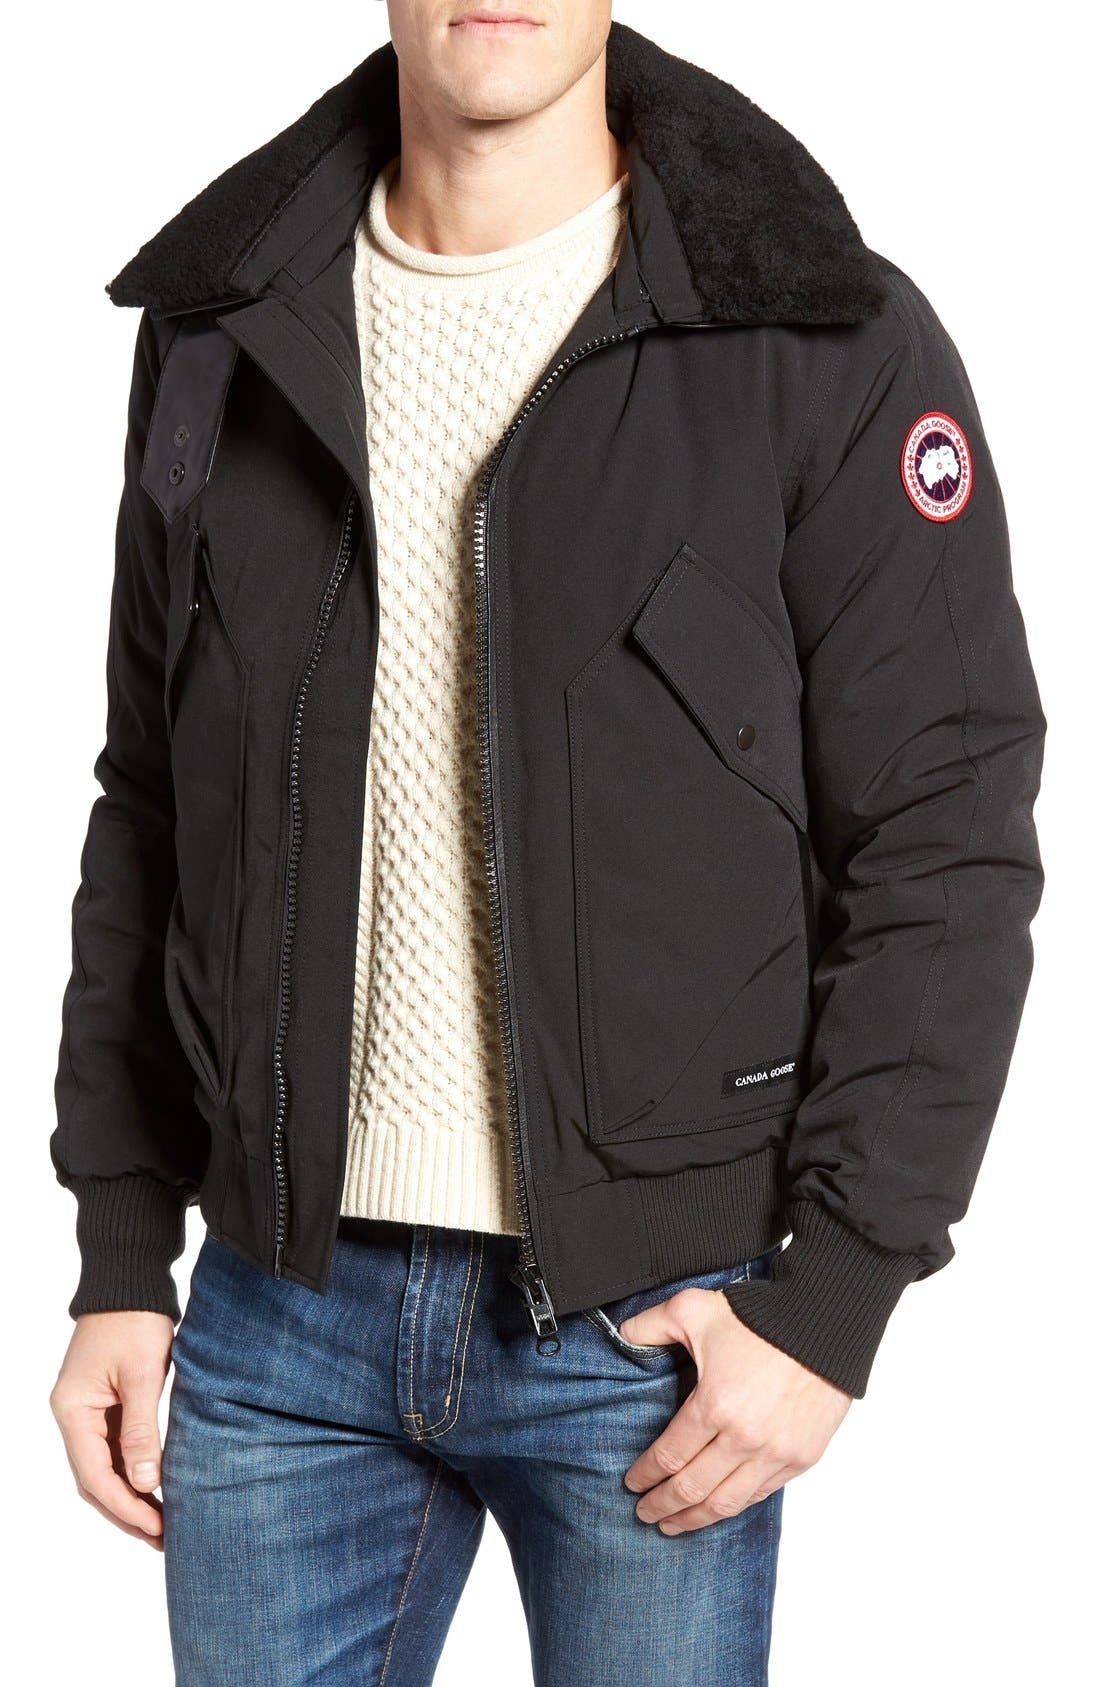 Main Image - Canada Goose Bromley Down Bomber Jacket with Genuine Shearling Collar